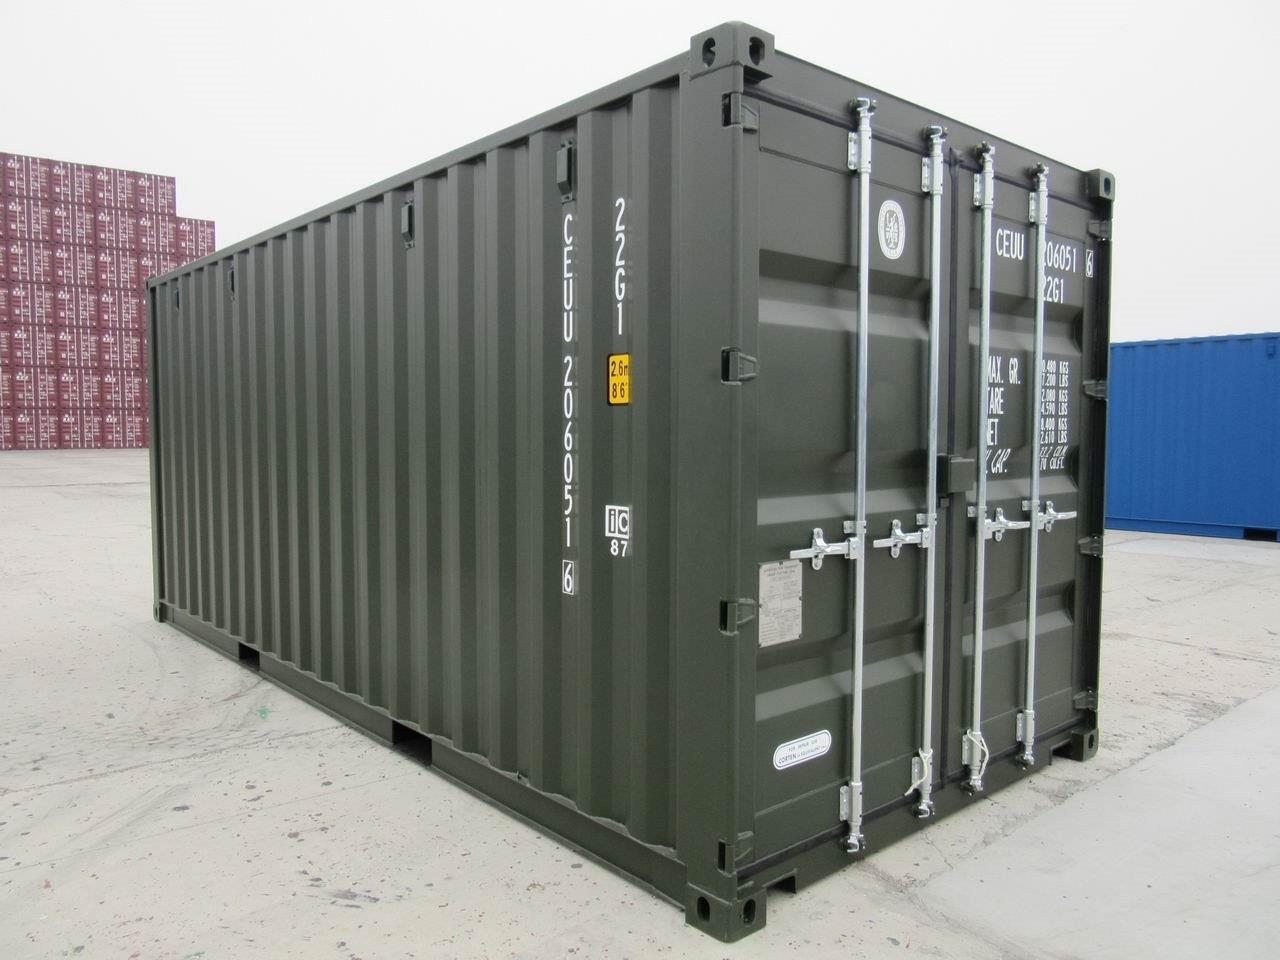 new 20ft storage container for sale only 1845 delivered. Black Bedroom Furniture Sets. Home Design Ideas